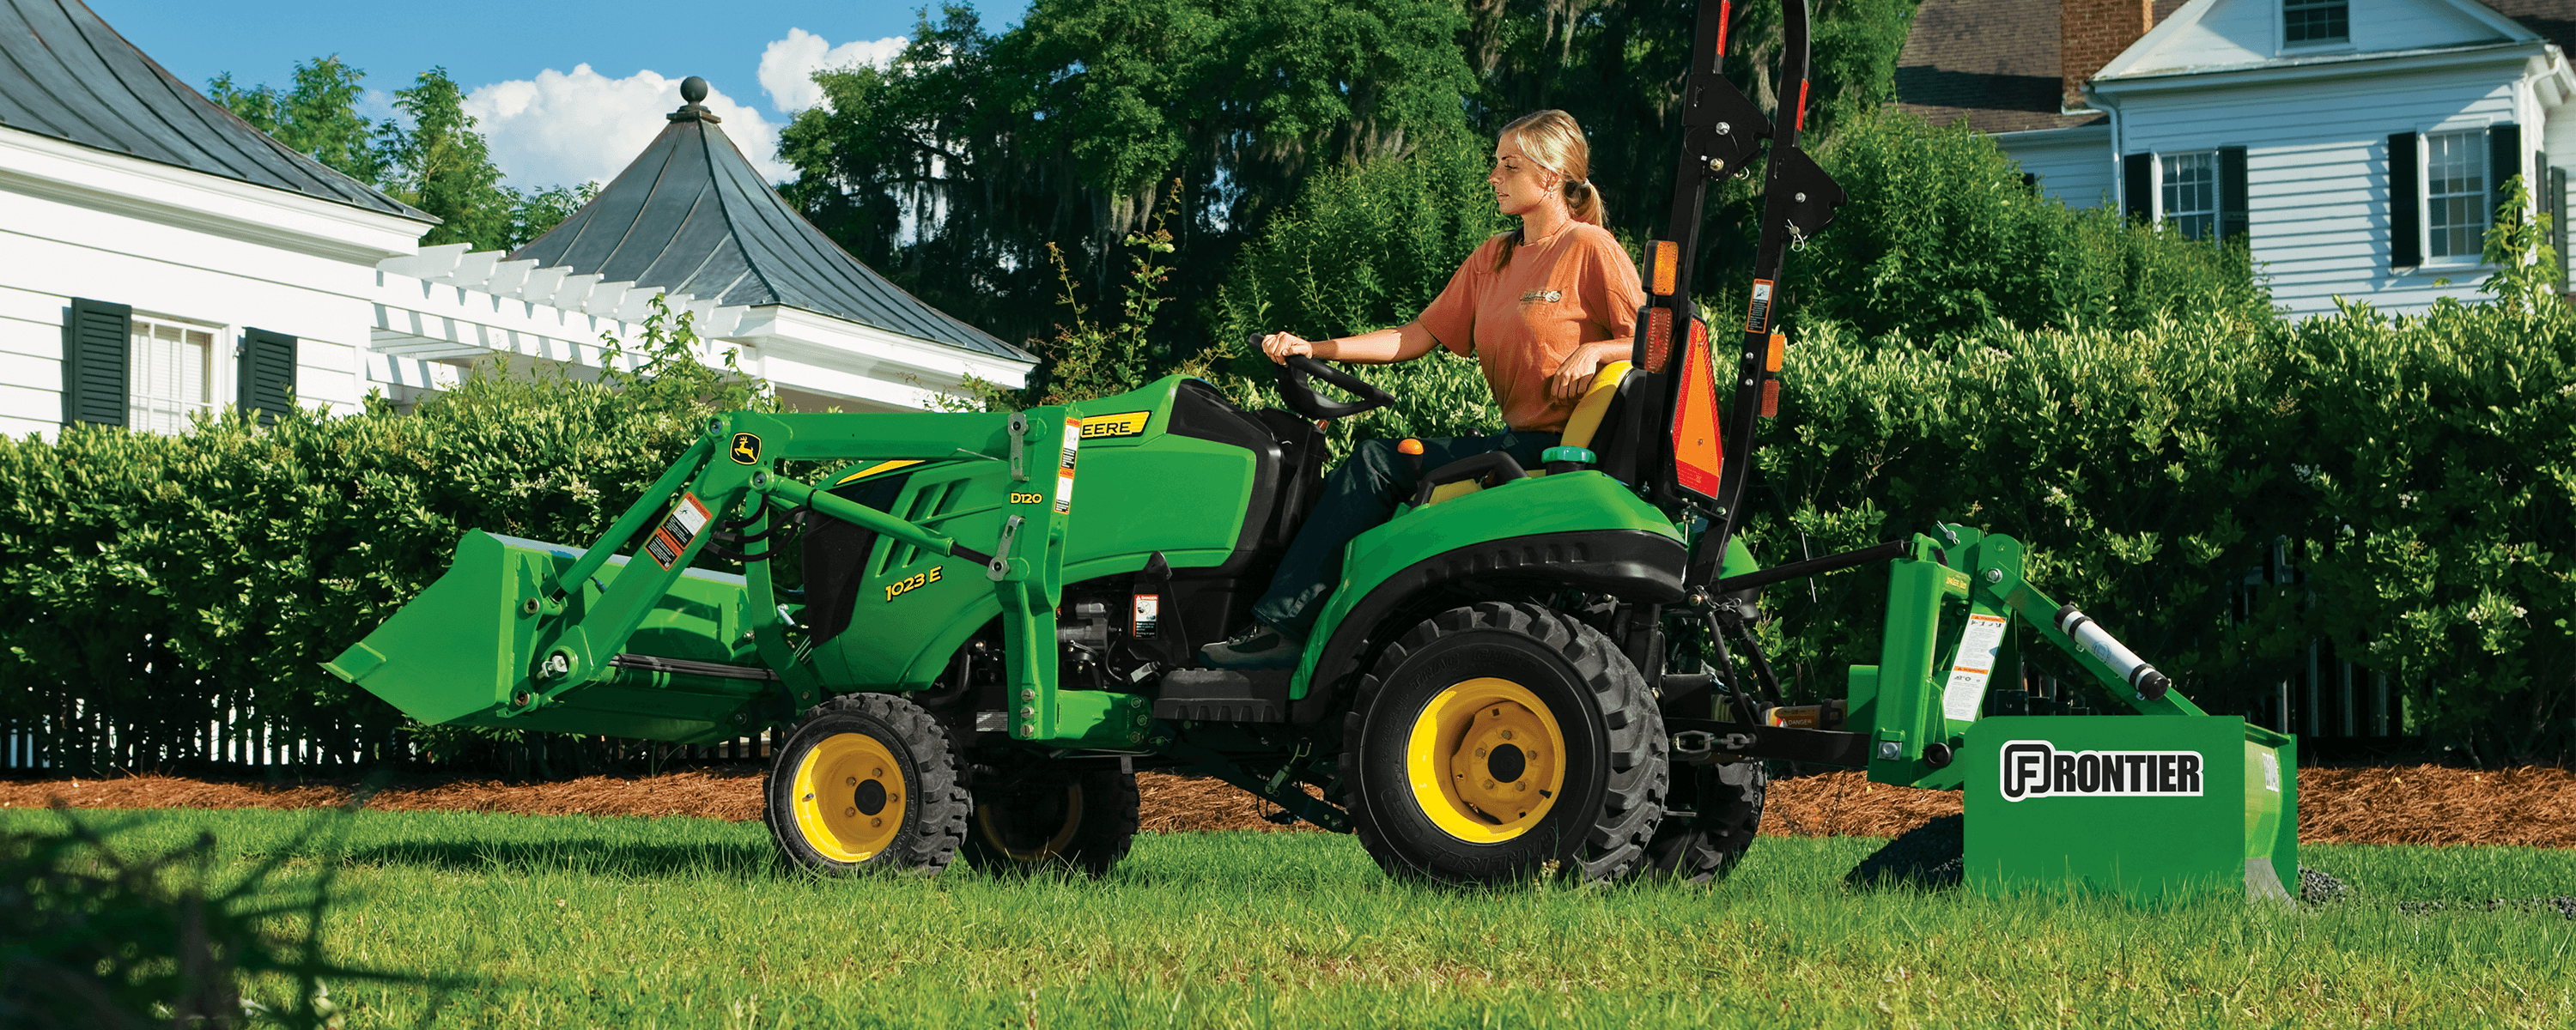 John Deere 1 Family Sub-Compact Tractor | Papé Machinery